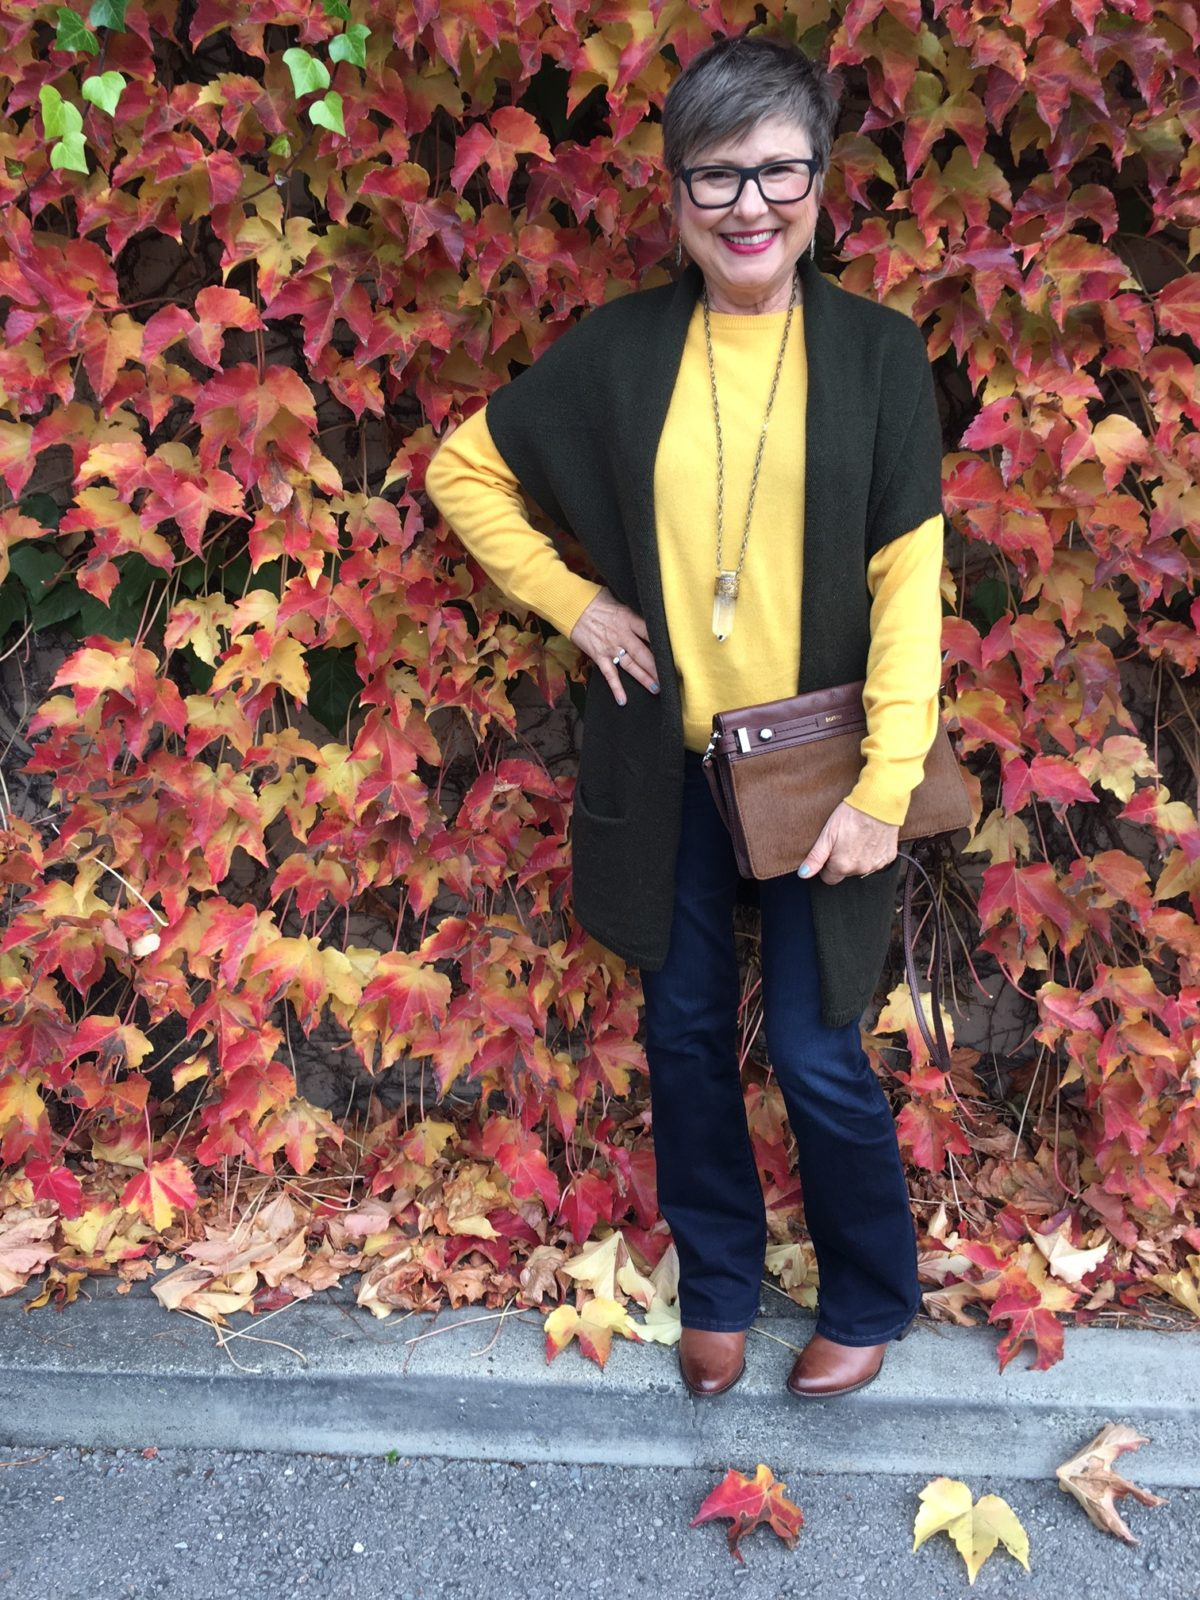 Vince cardigan and saffron yellow sweater by Grana